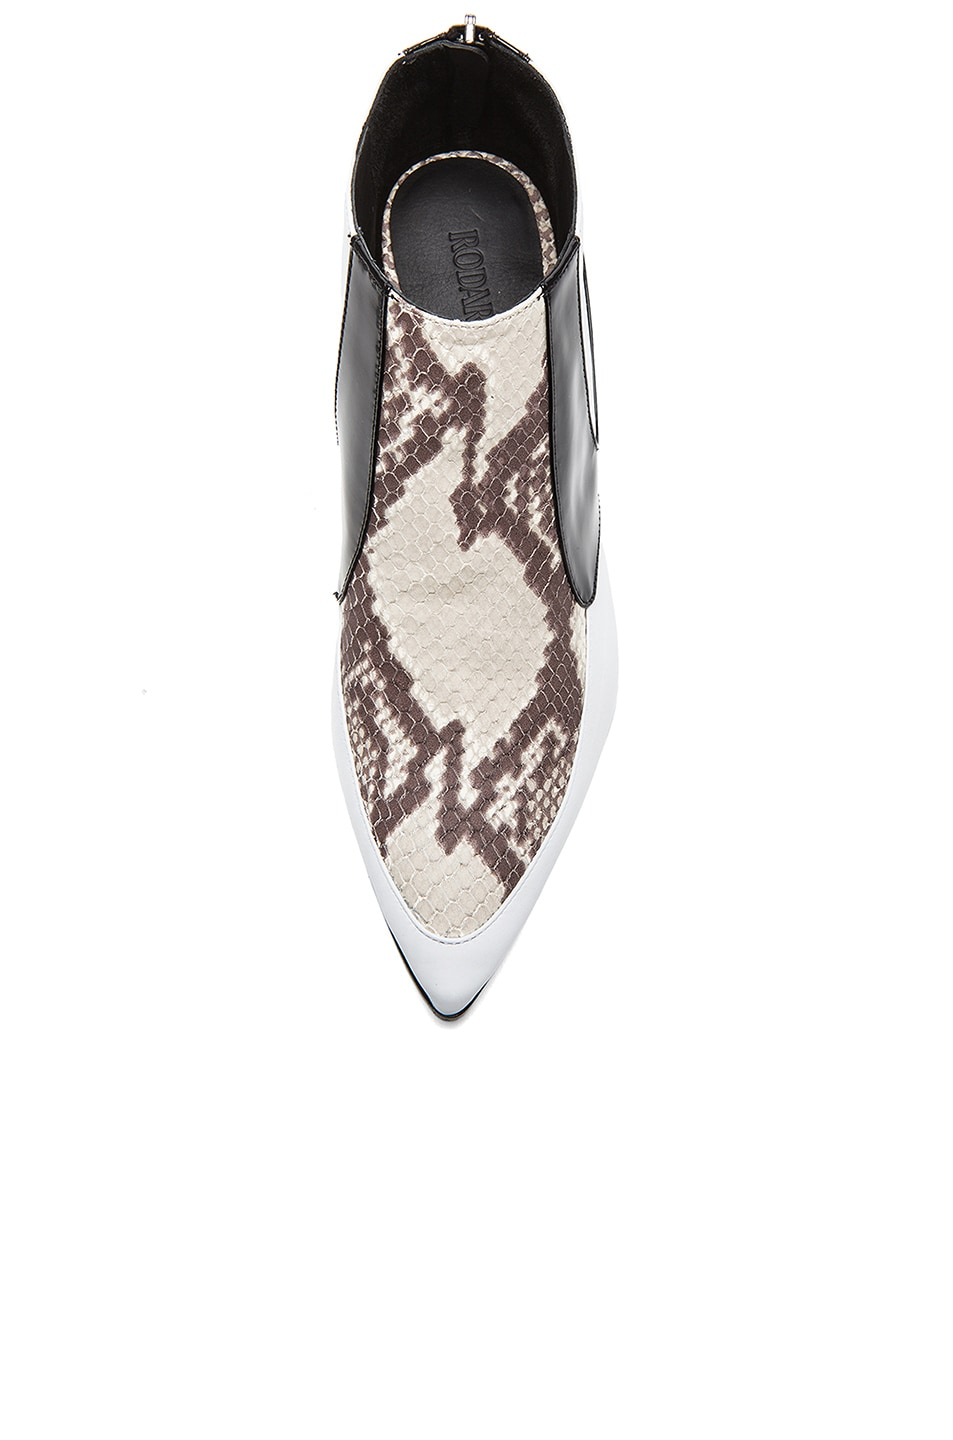 Image 4 of Rodarte Snakeskin Embossed Leather Booties in White, Black, & Grey